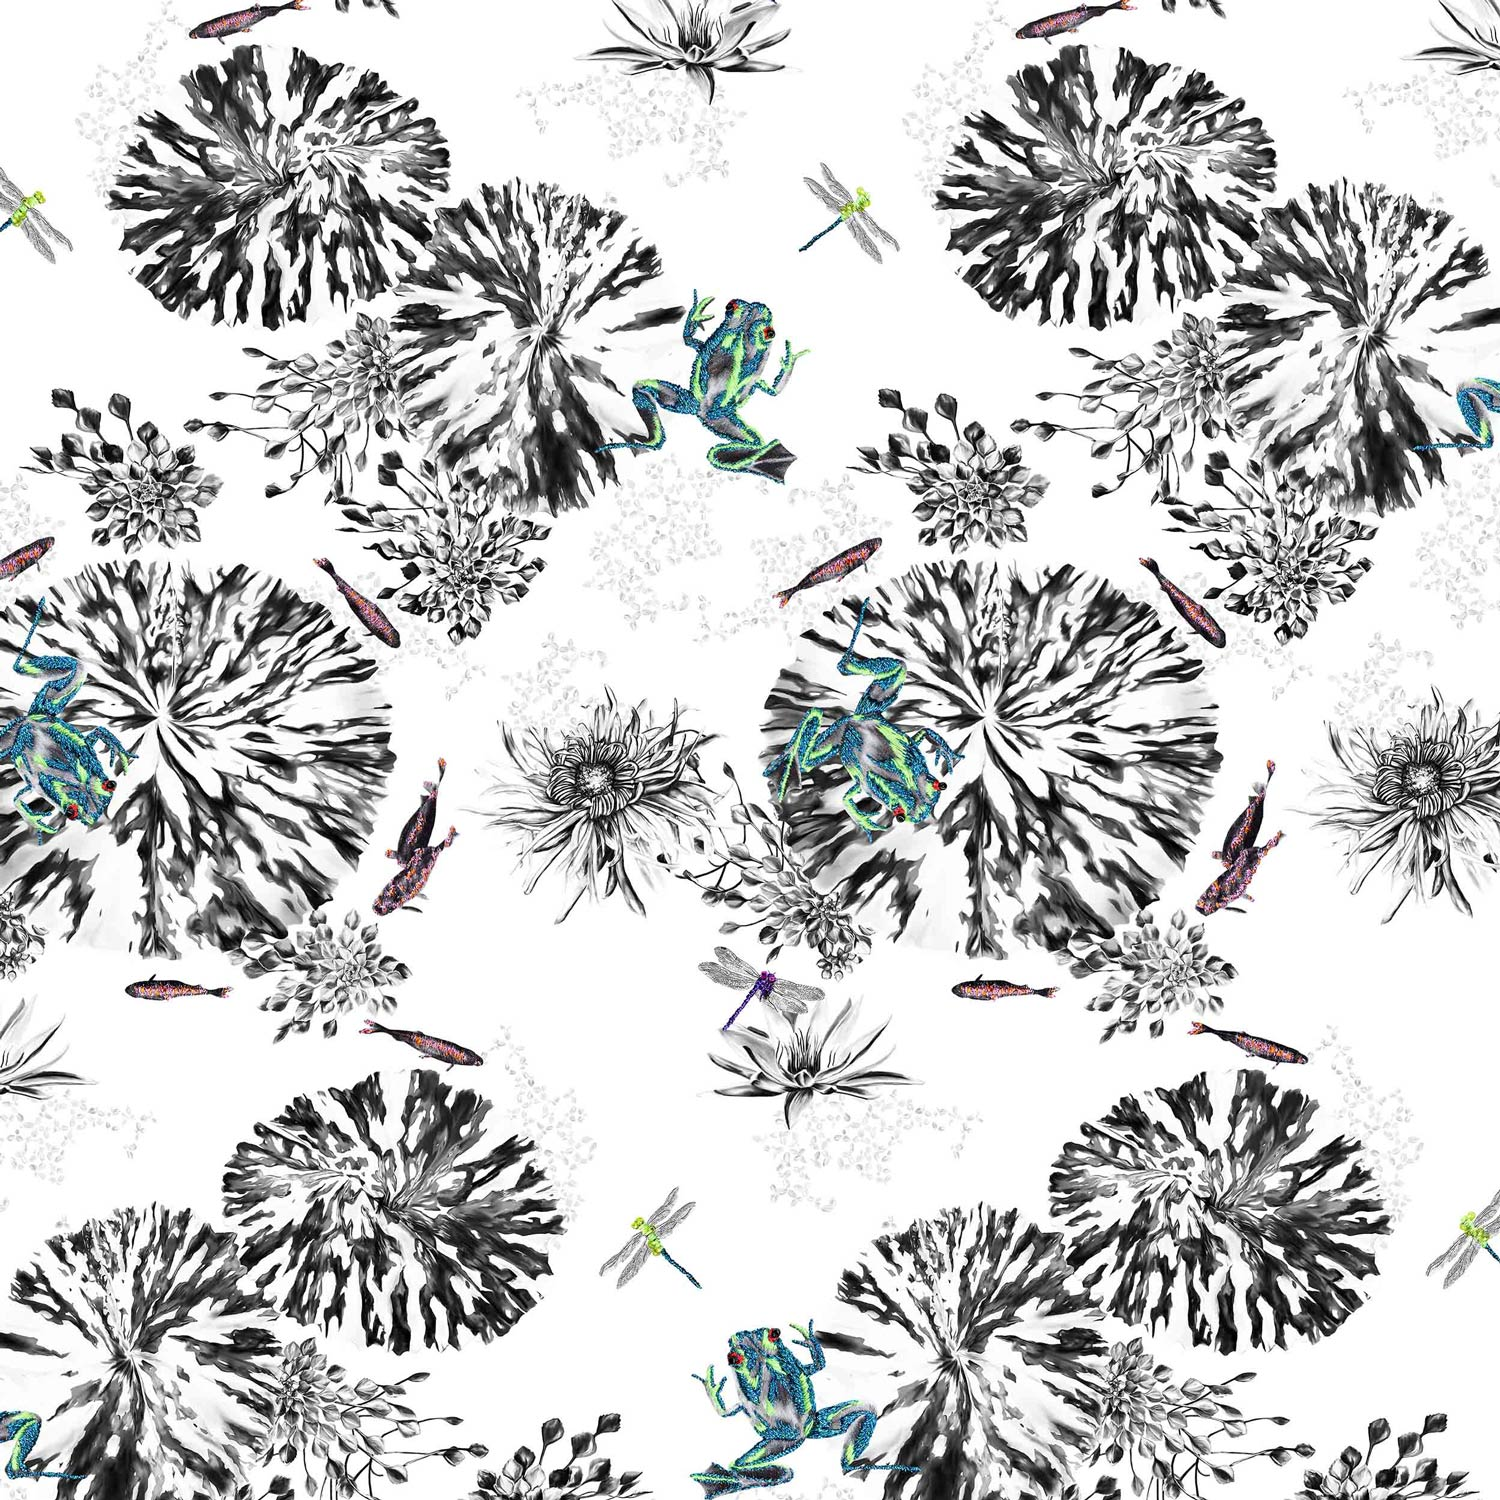 green-frogs-on-a-lily-pad-fabric.jpg